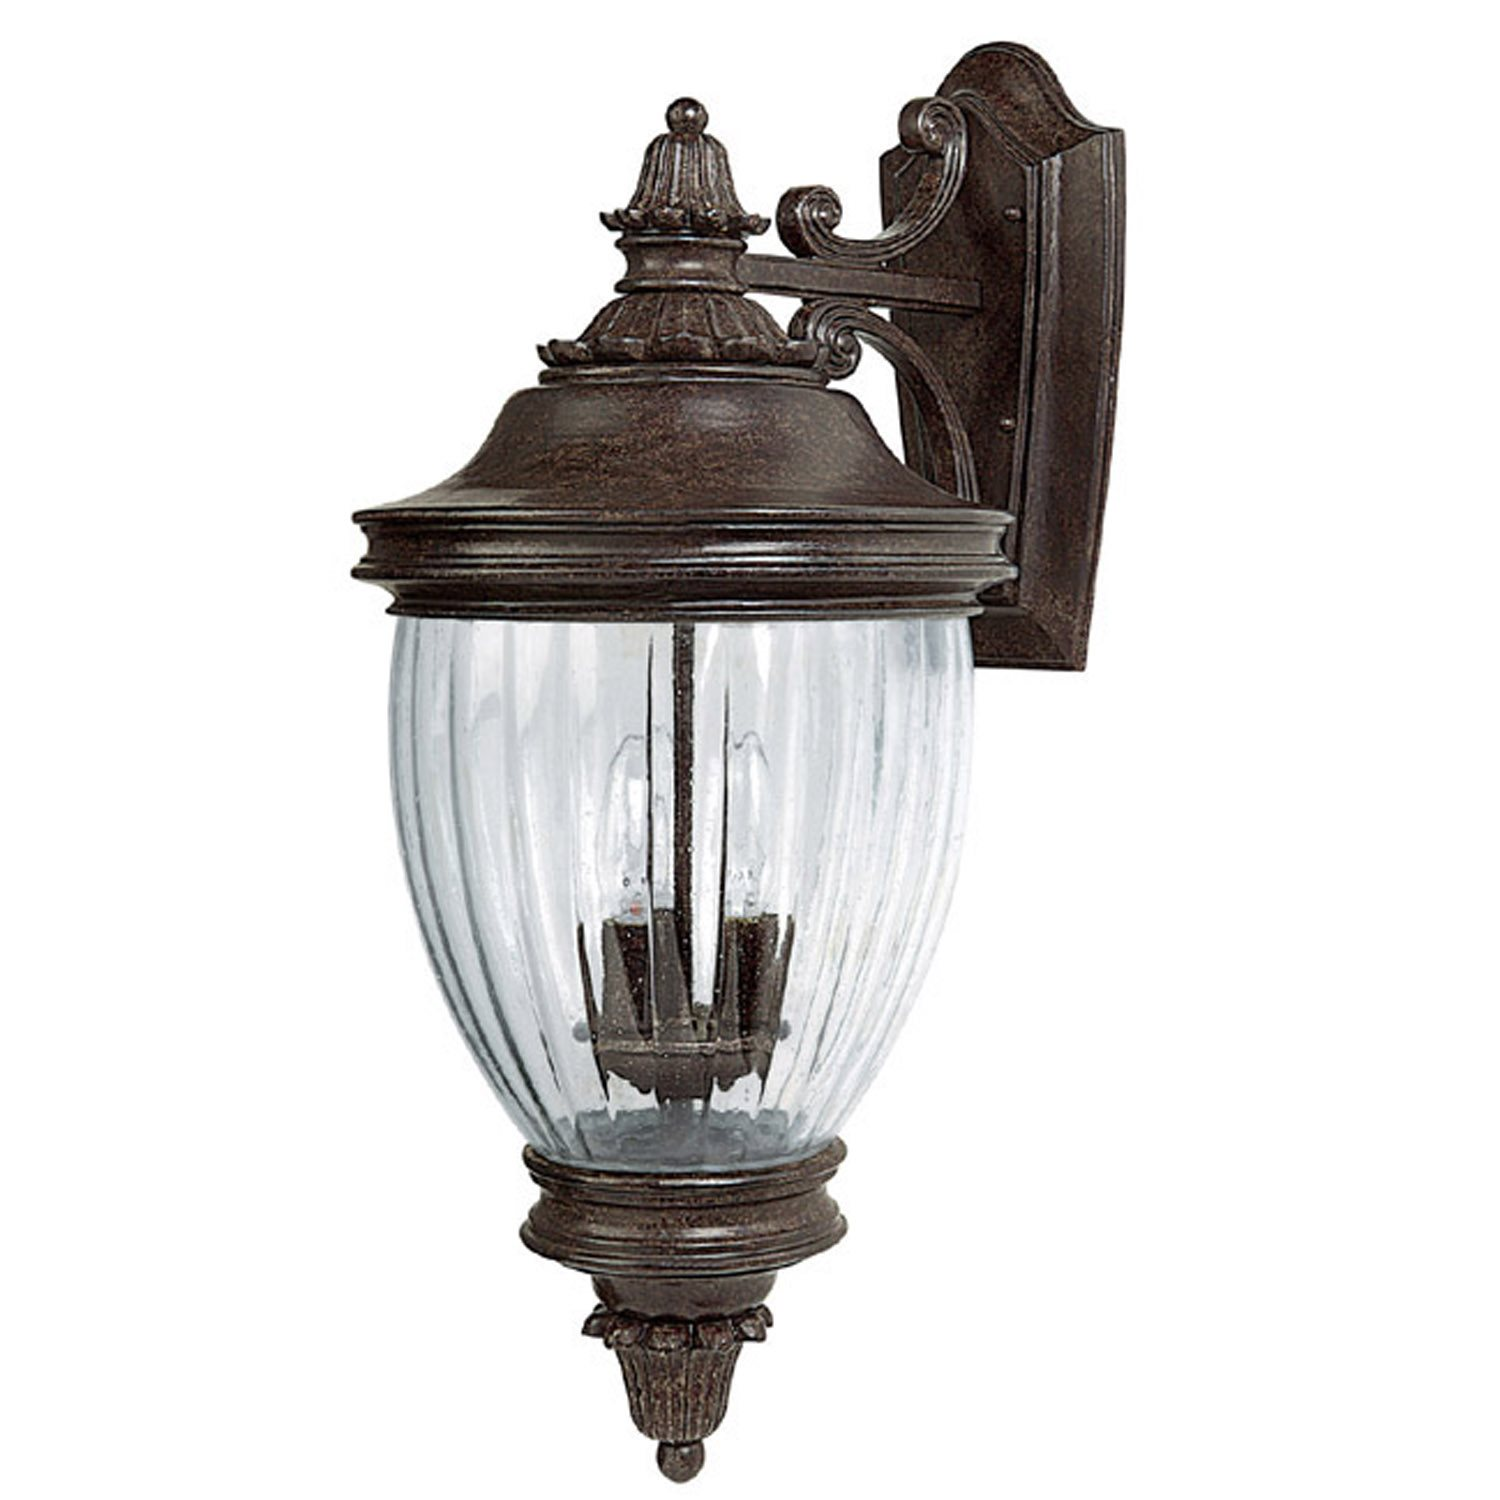 Capital Lighting 9772TS Battery Park Traditional Outdoor Wall Sconce CP-9772TS